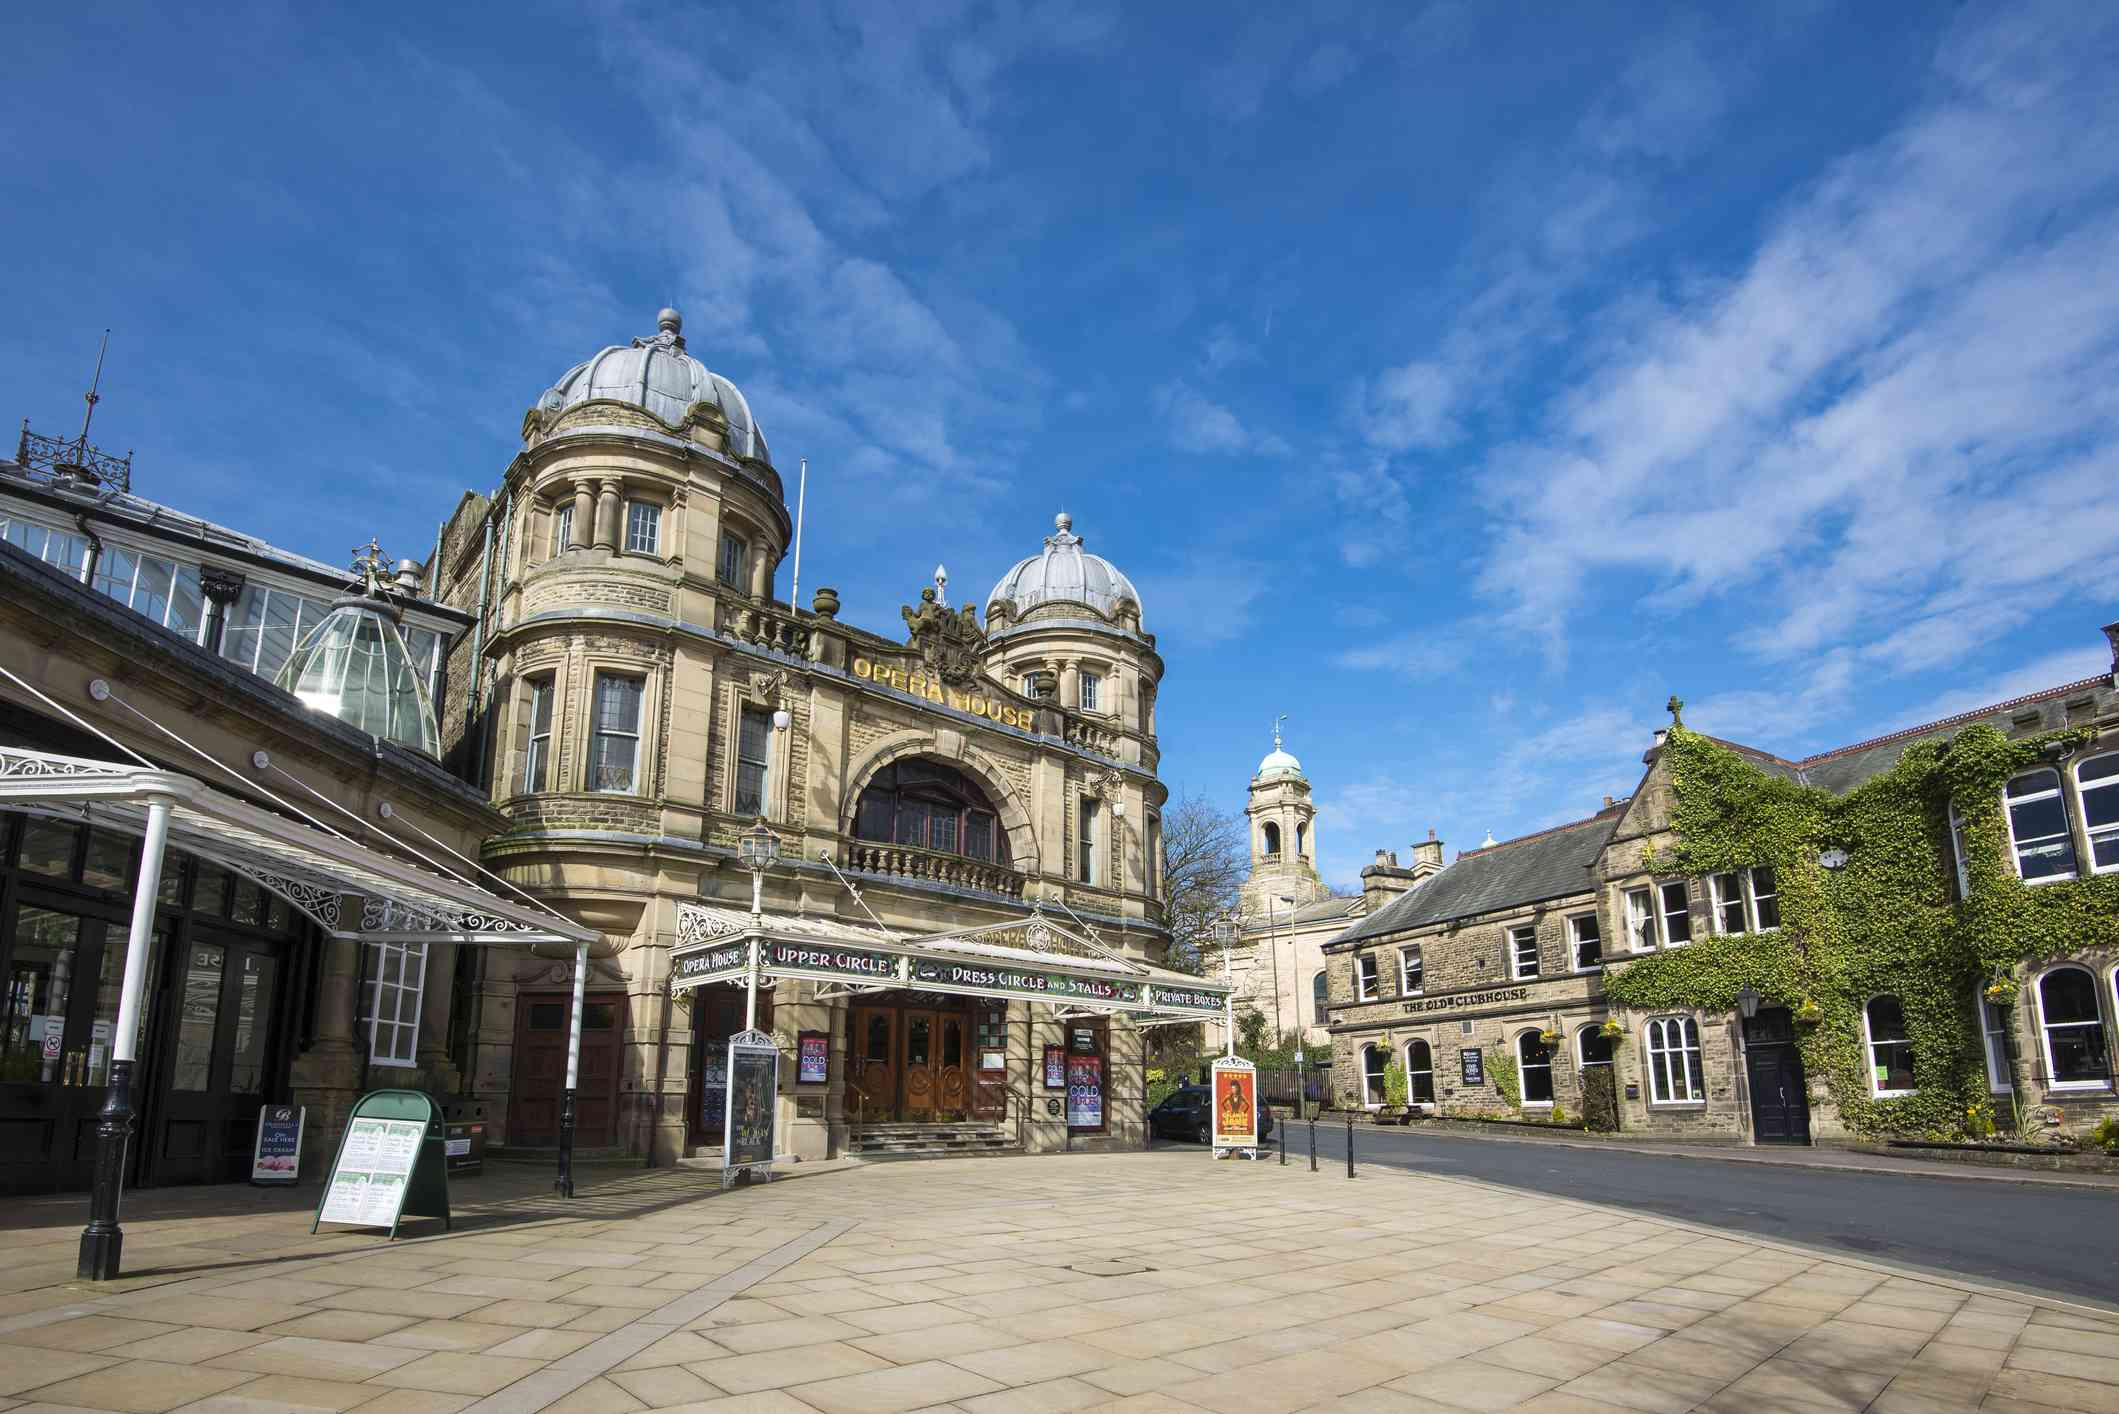 The front of the Opera House in Buxton, England taken on a sunny spring day.